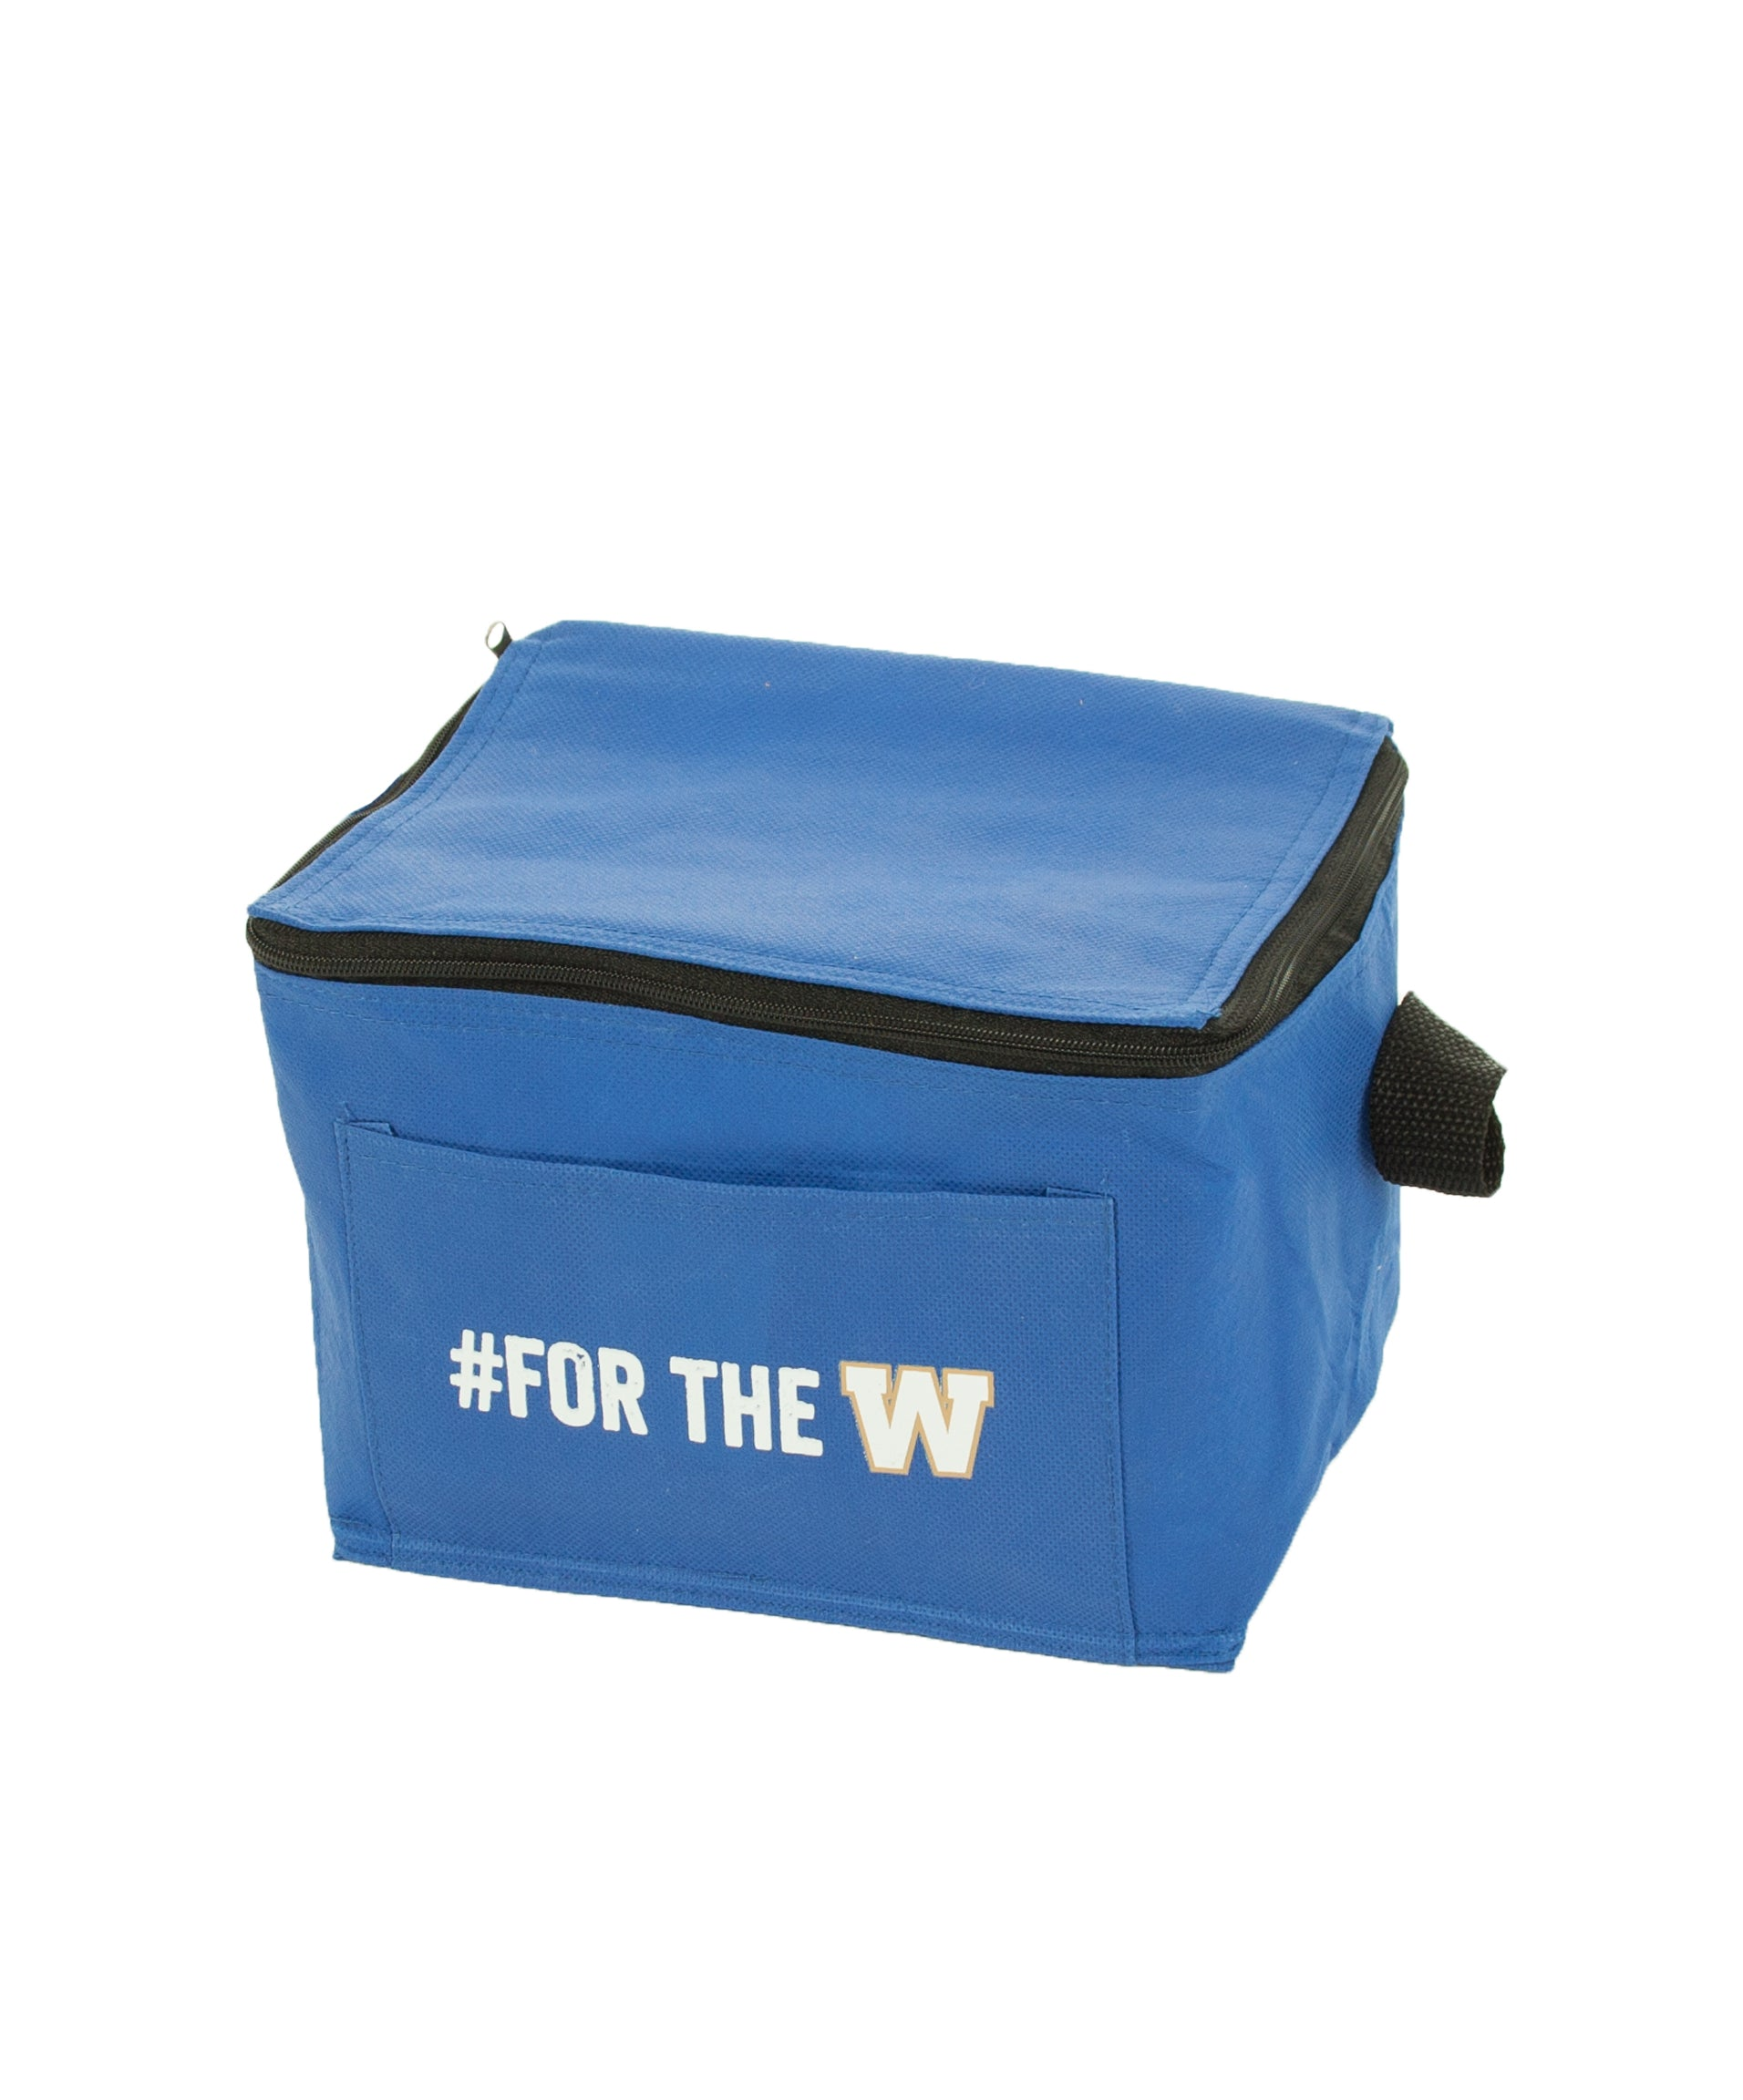 #fortheW Lunch Cooler